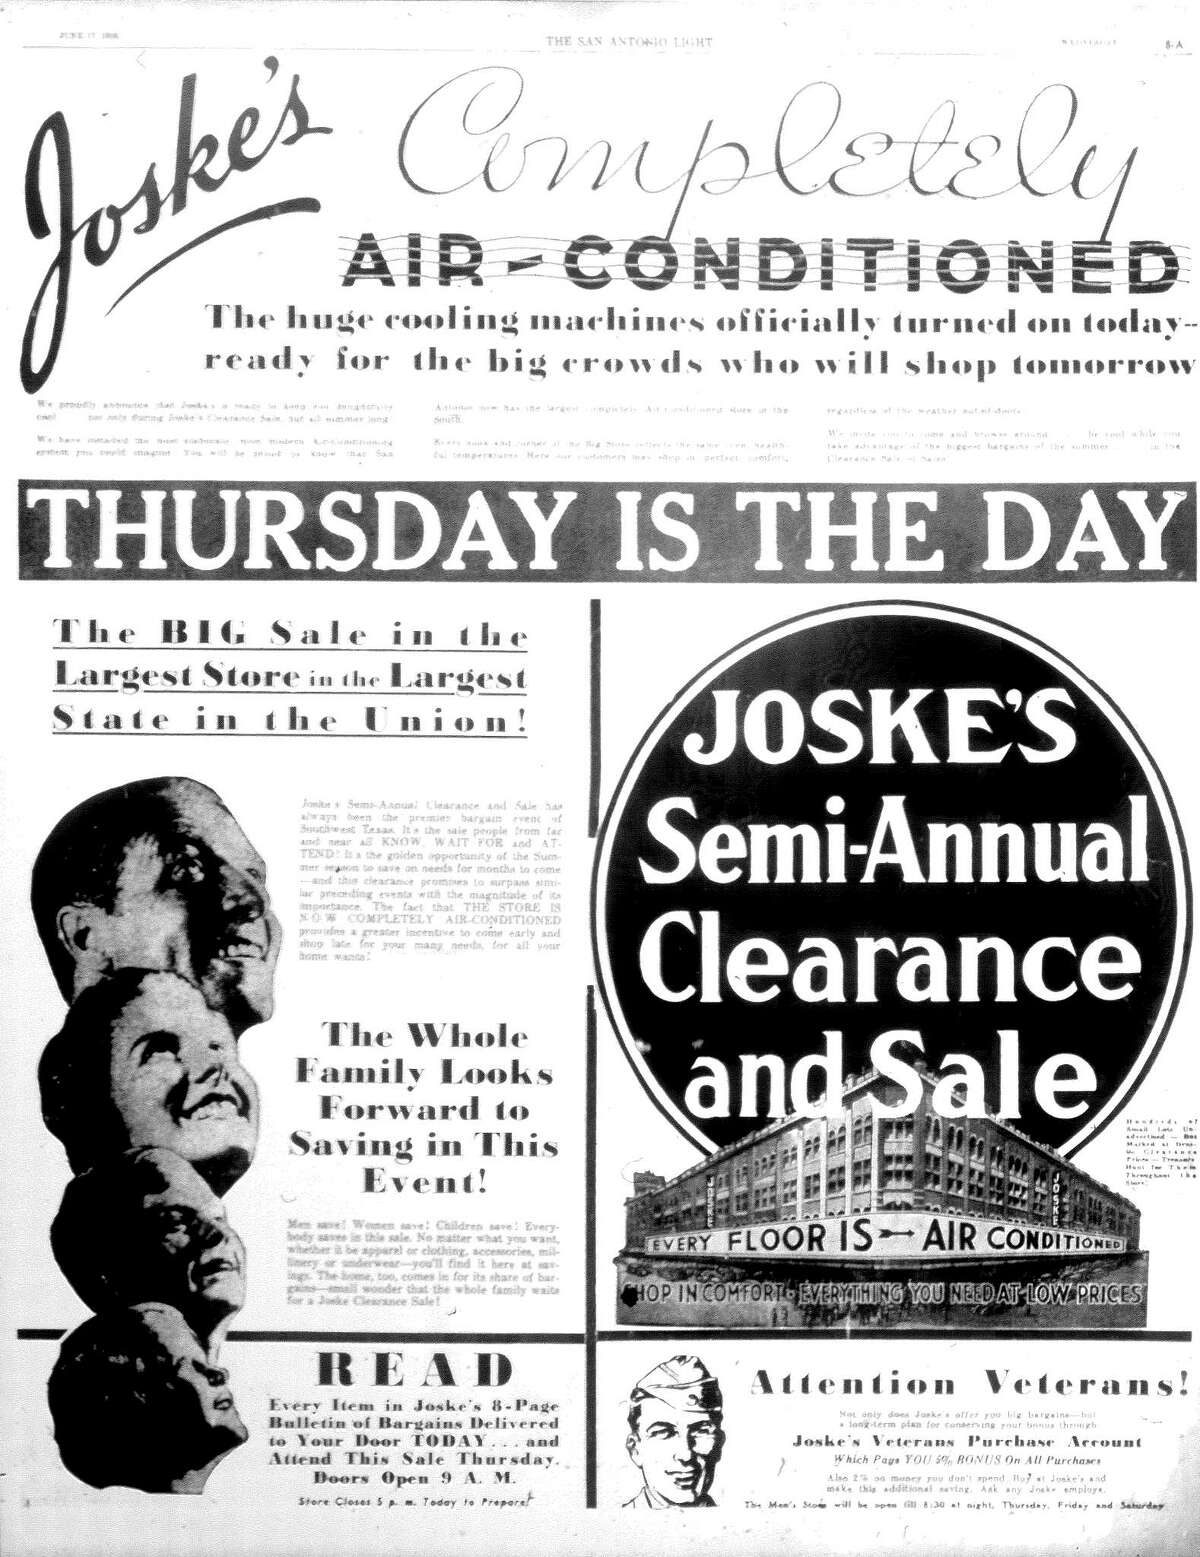 An advertisement from the June 17, 1936, edition of the San Antonio Light touts the new air conditioning at Joske's department store.